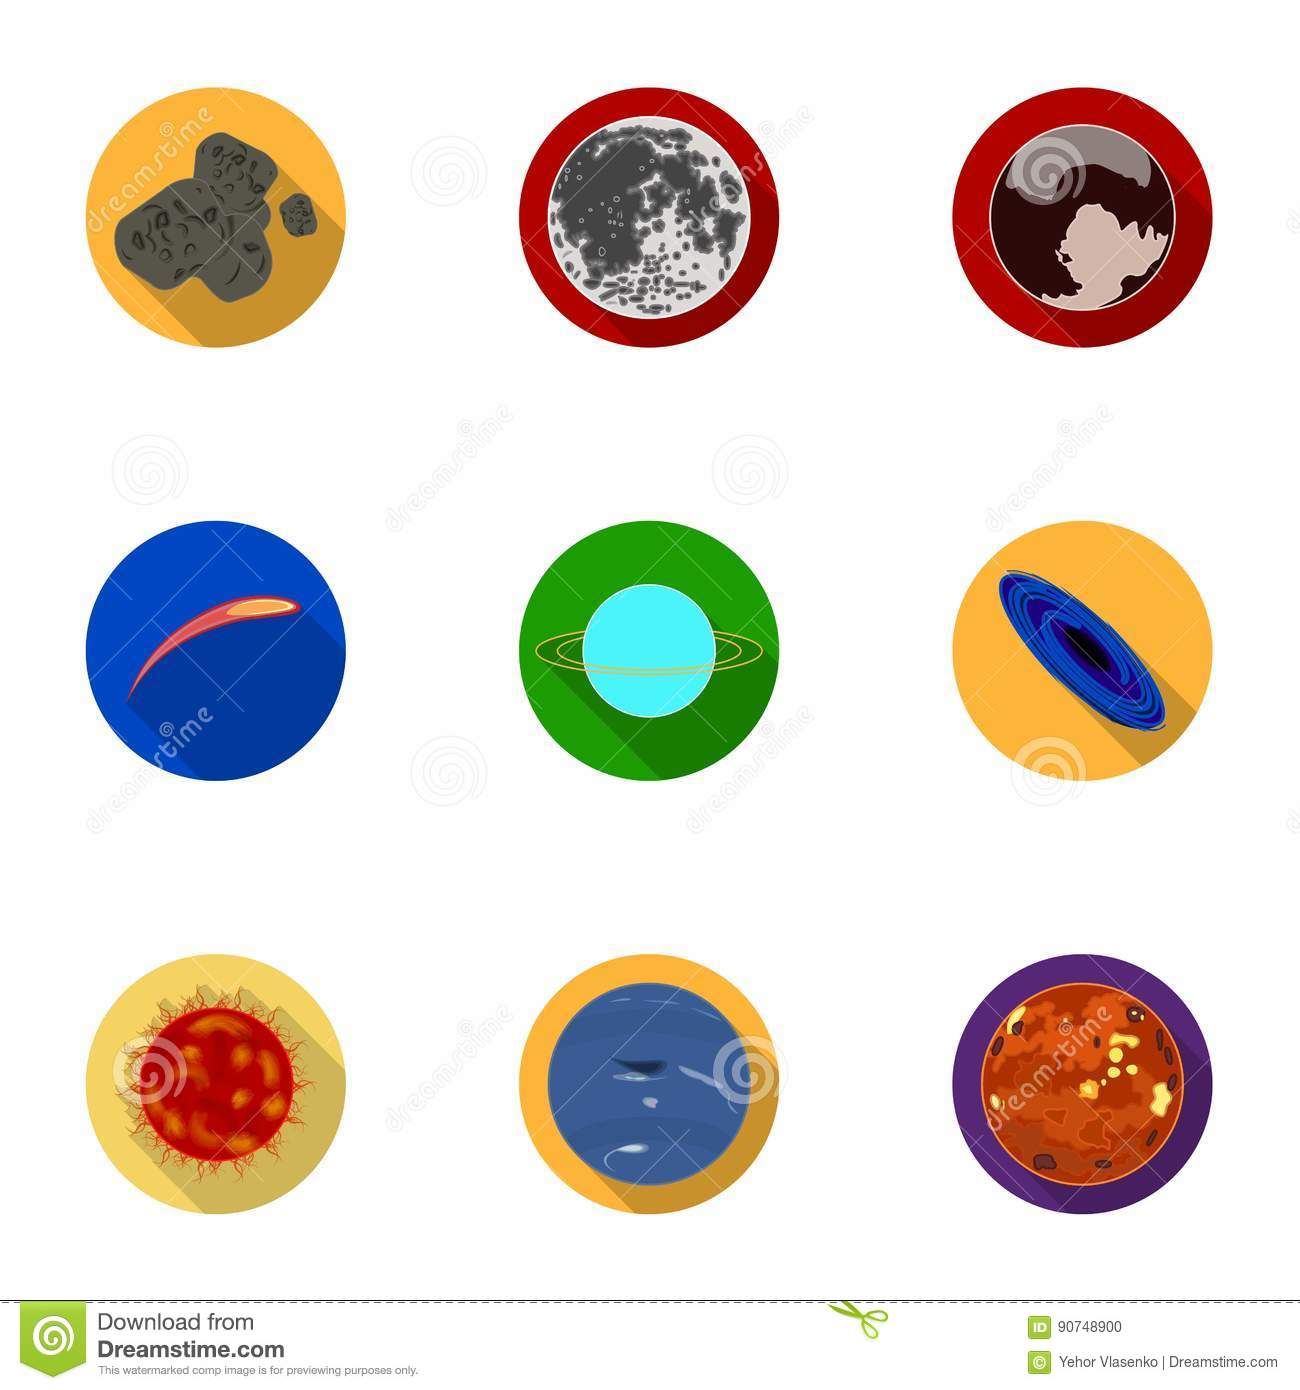 Set planets solar system cartoon style flat icon stock vector image - Cosmic Objects Set Hand Drawn Vector Doodles Rockets